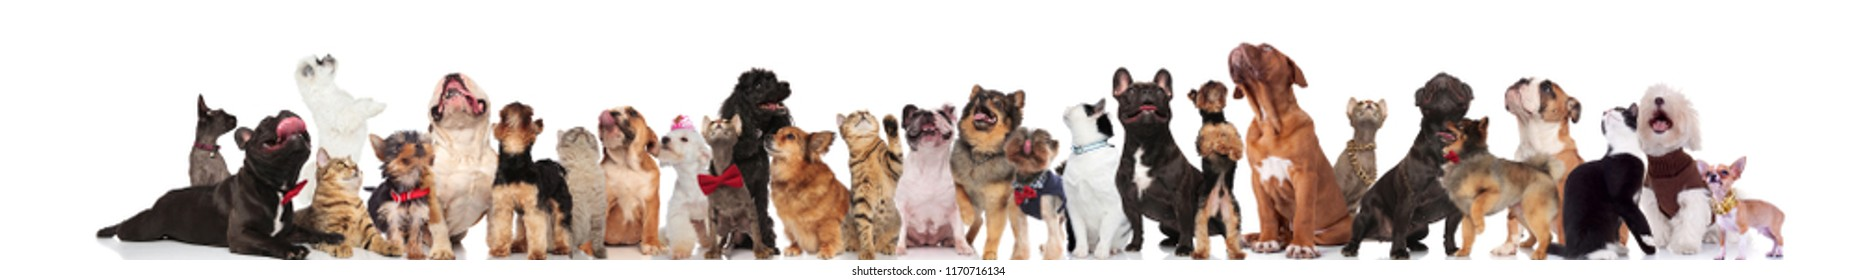 cute cats and dogs wearing bowties and collars look up while standing and sitting on white background